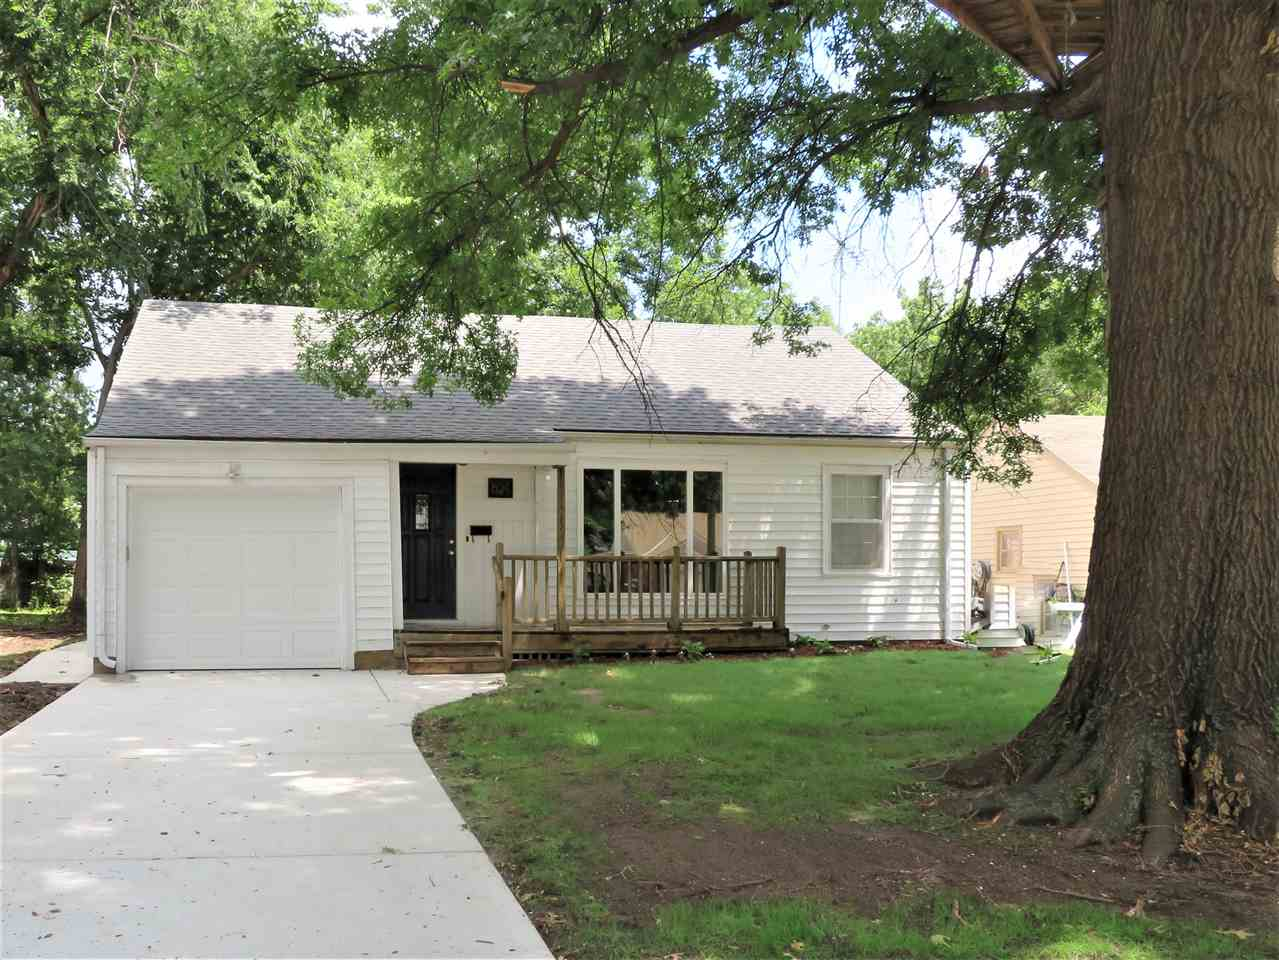 Super Sweet Updated Home! Neutral color welcomes you to this Ready To Move In Home located close to